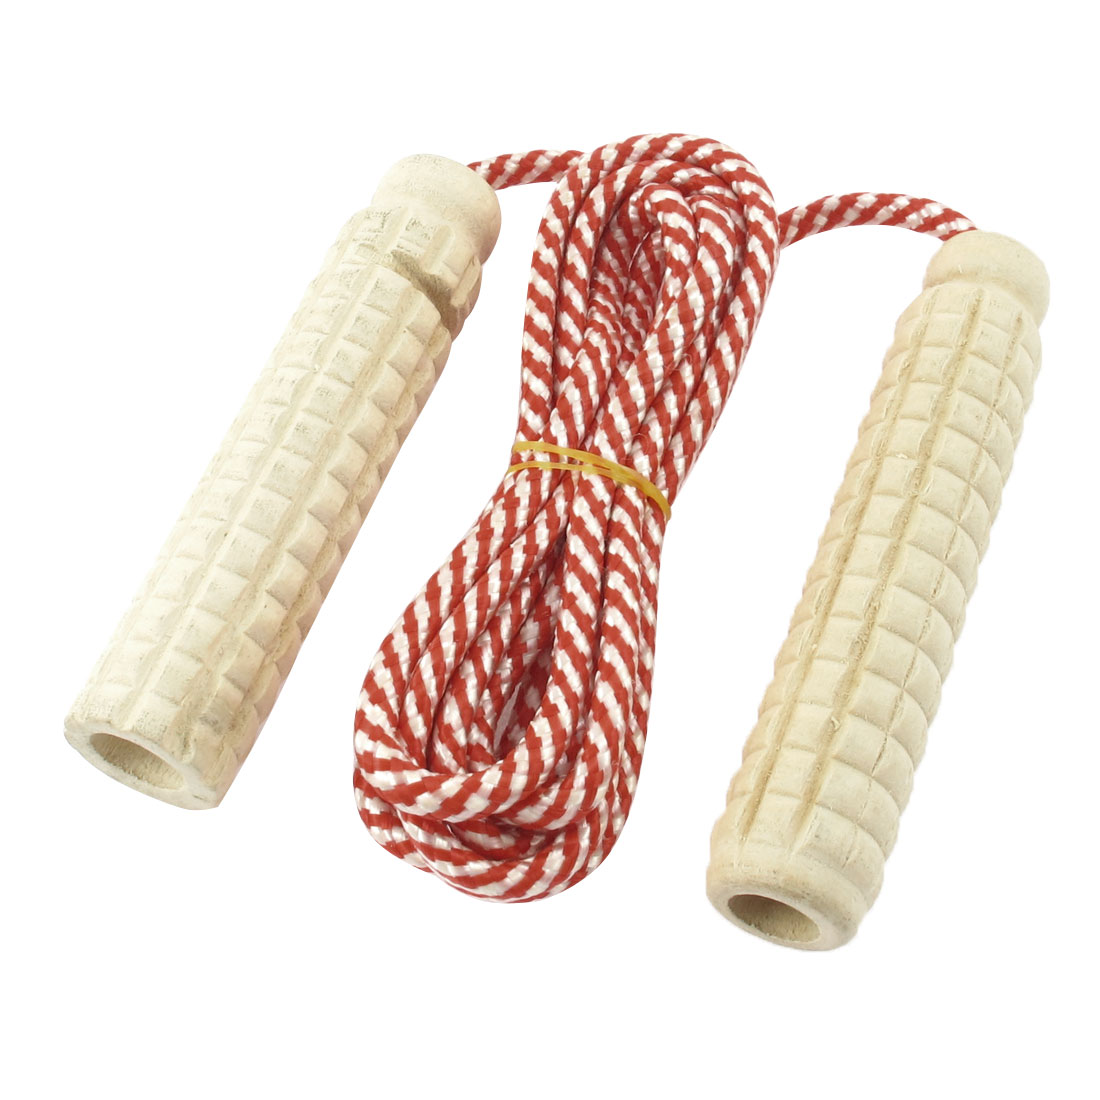 Unique Bargains 7.1 Ft Nylon String Wooden Grips Fitness Exercise Jump Rope Skipping Rope